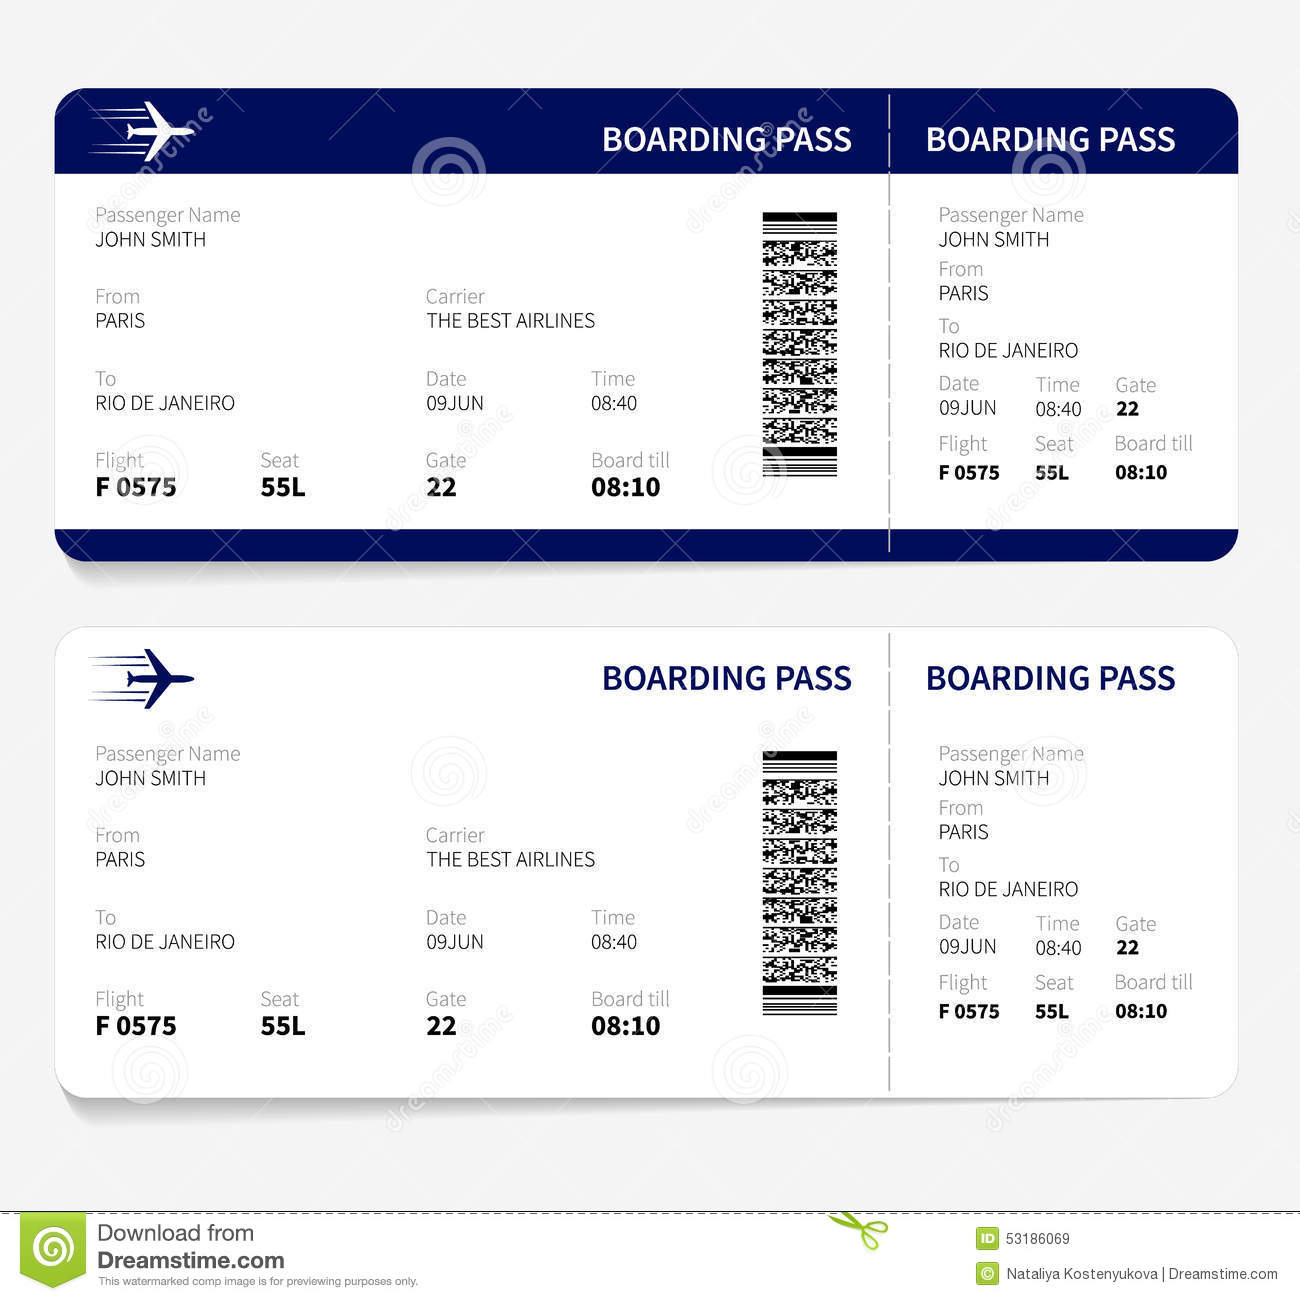 Boarding Pass Template Photos Images Pictures 555 Images – Plane Ticket Template